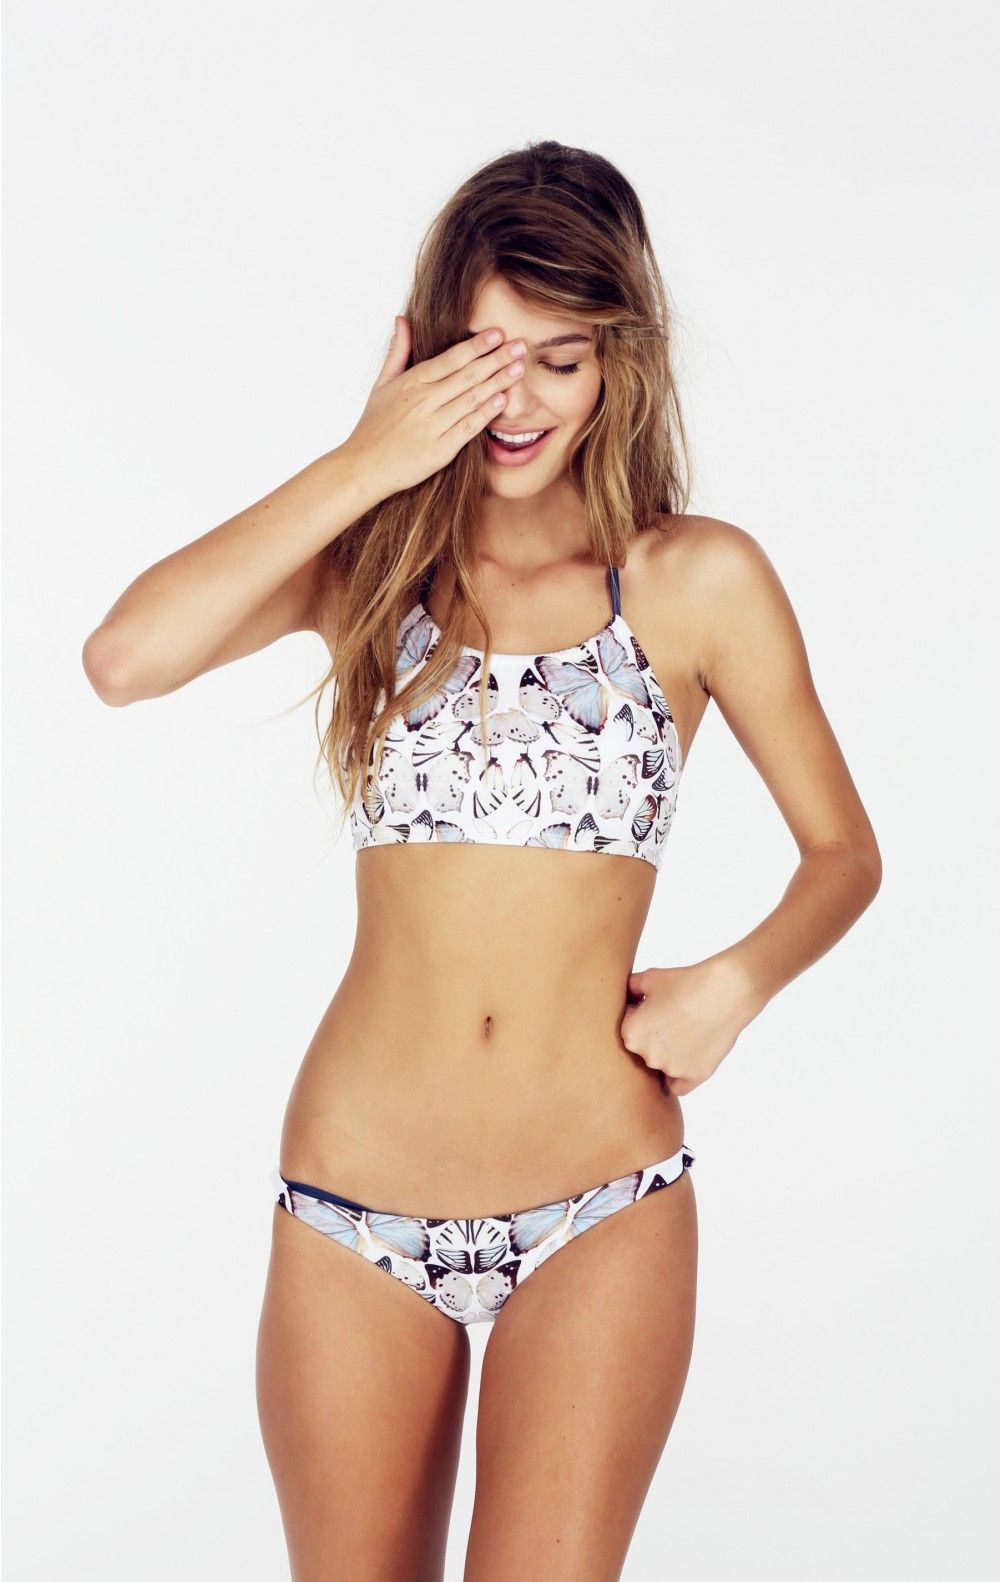 Bikinis with buttefly bottom not